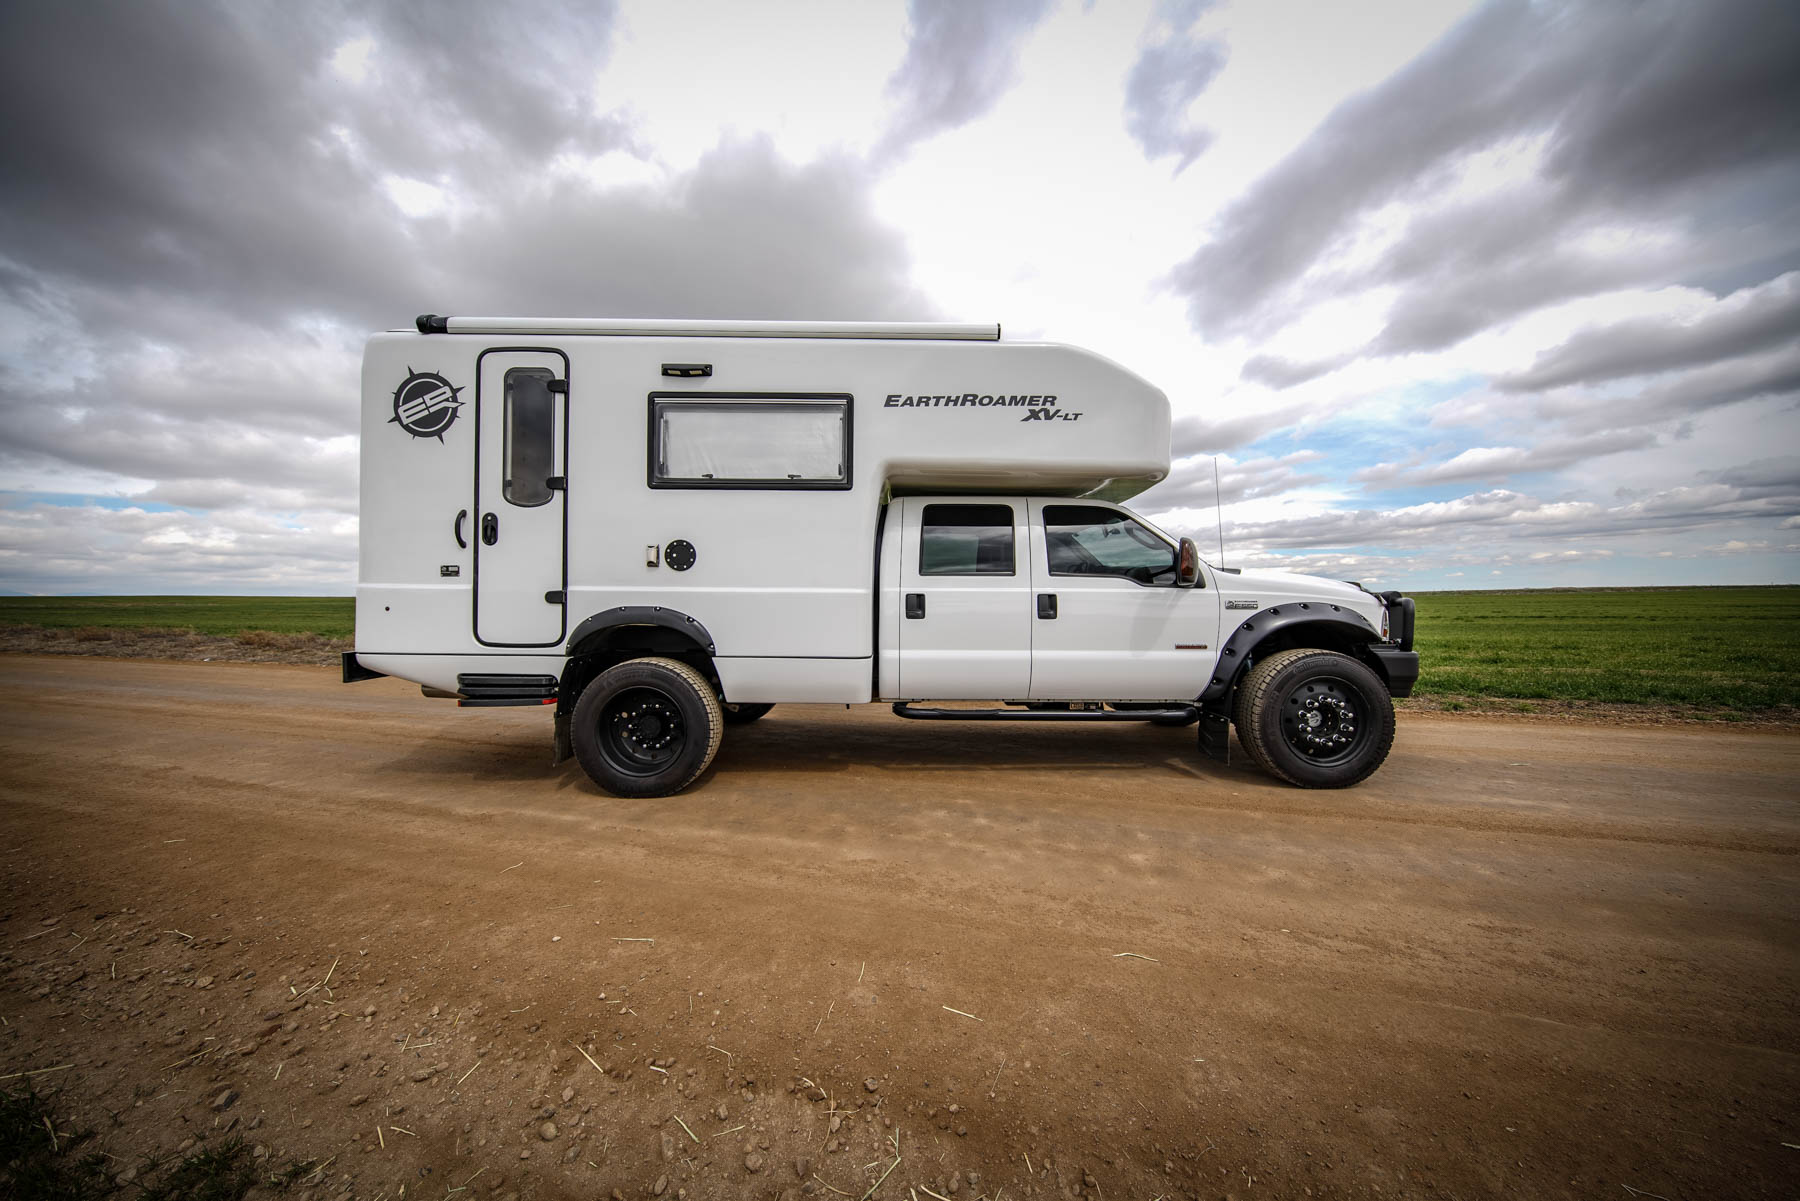 Would You Buy This $190,000 Camper or $19,000 Camper? - Expedition Portal